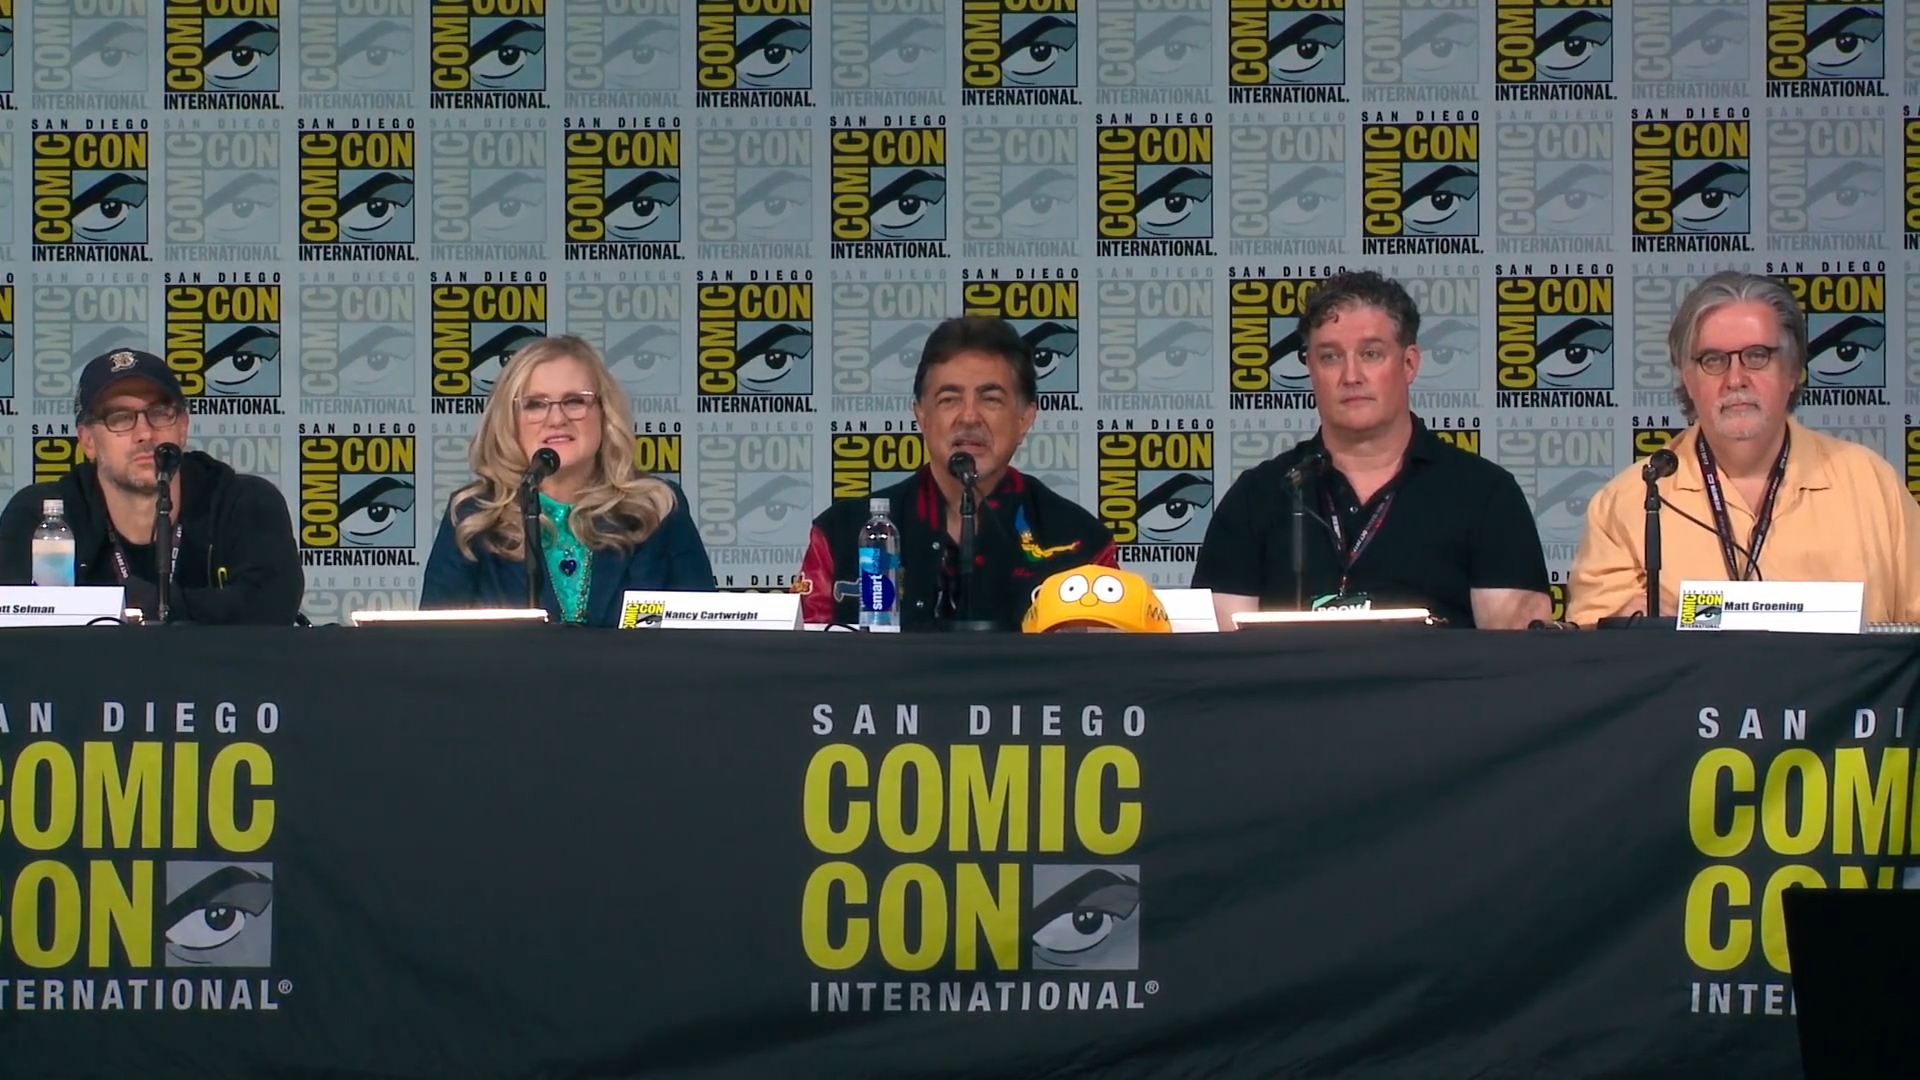 'The Simpsons' cast head a Q&A at Comic-Con 2017